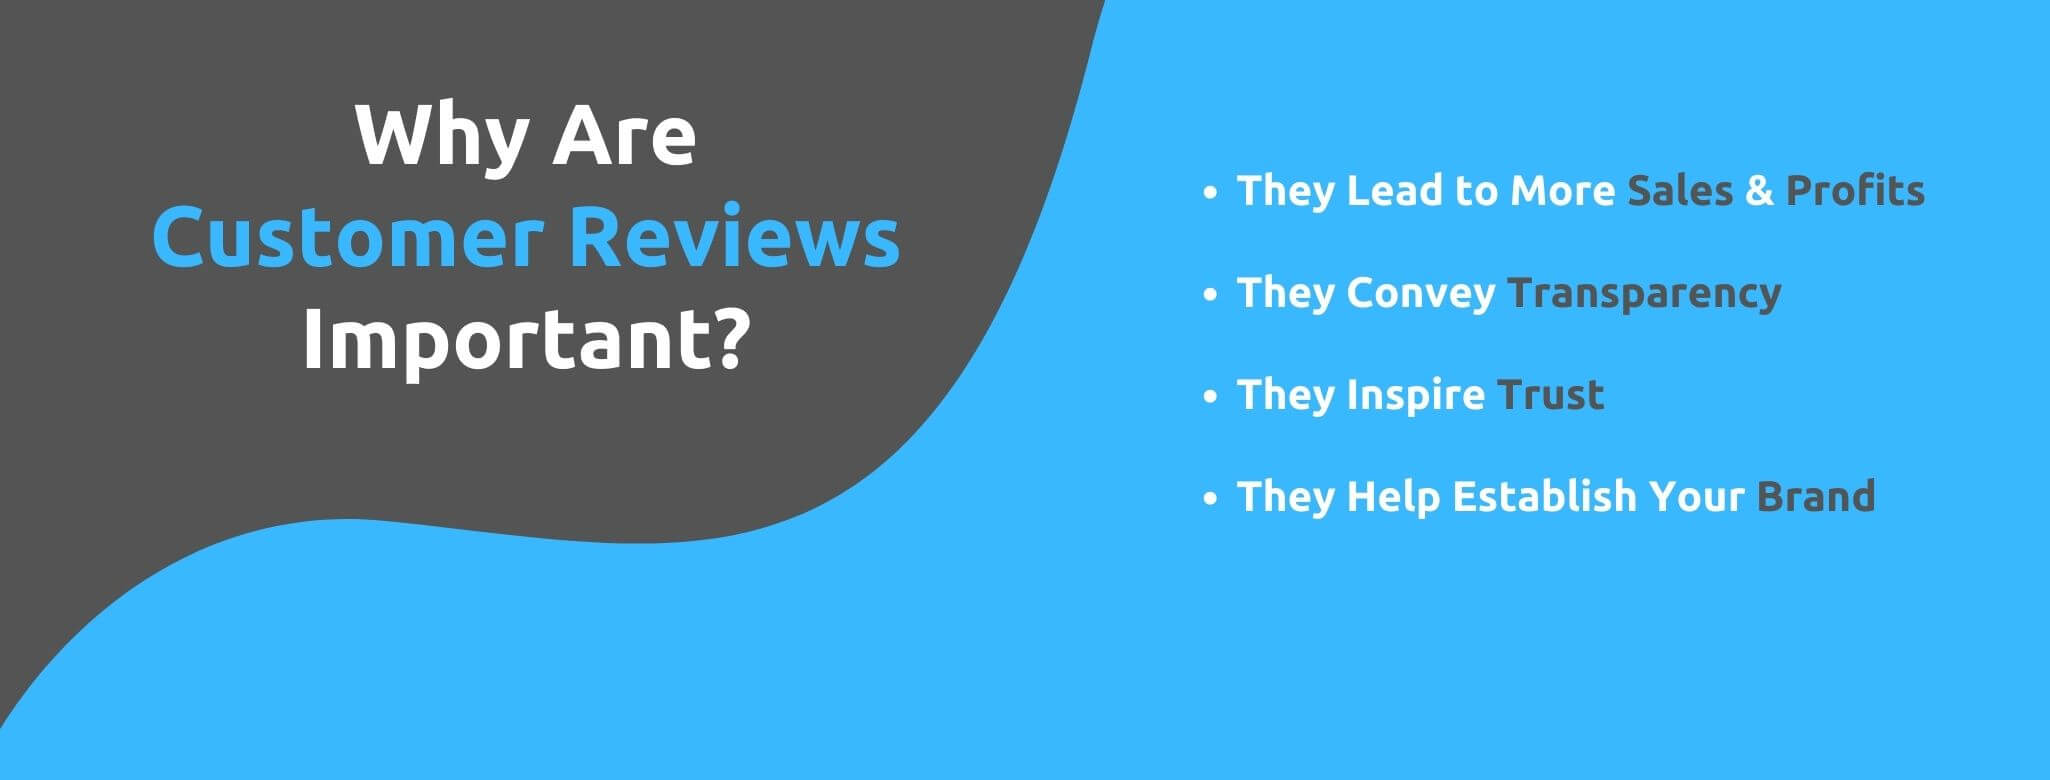 Why Are Customer Reviews Important? - How to Get Great Customer Reviews - Replyco Helpdesk Software for eCommerce